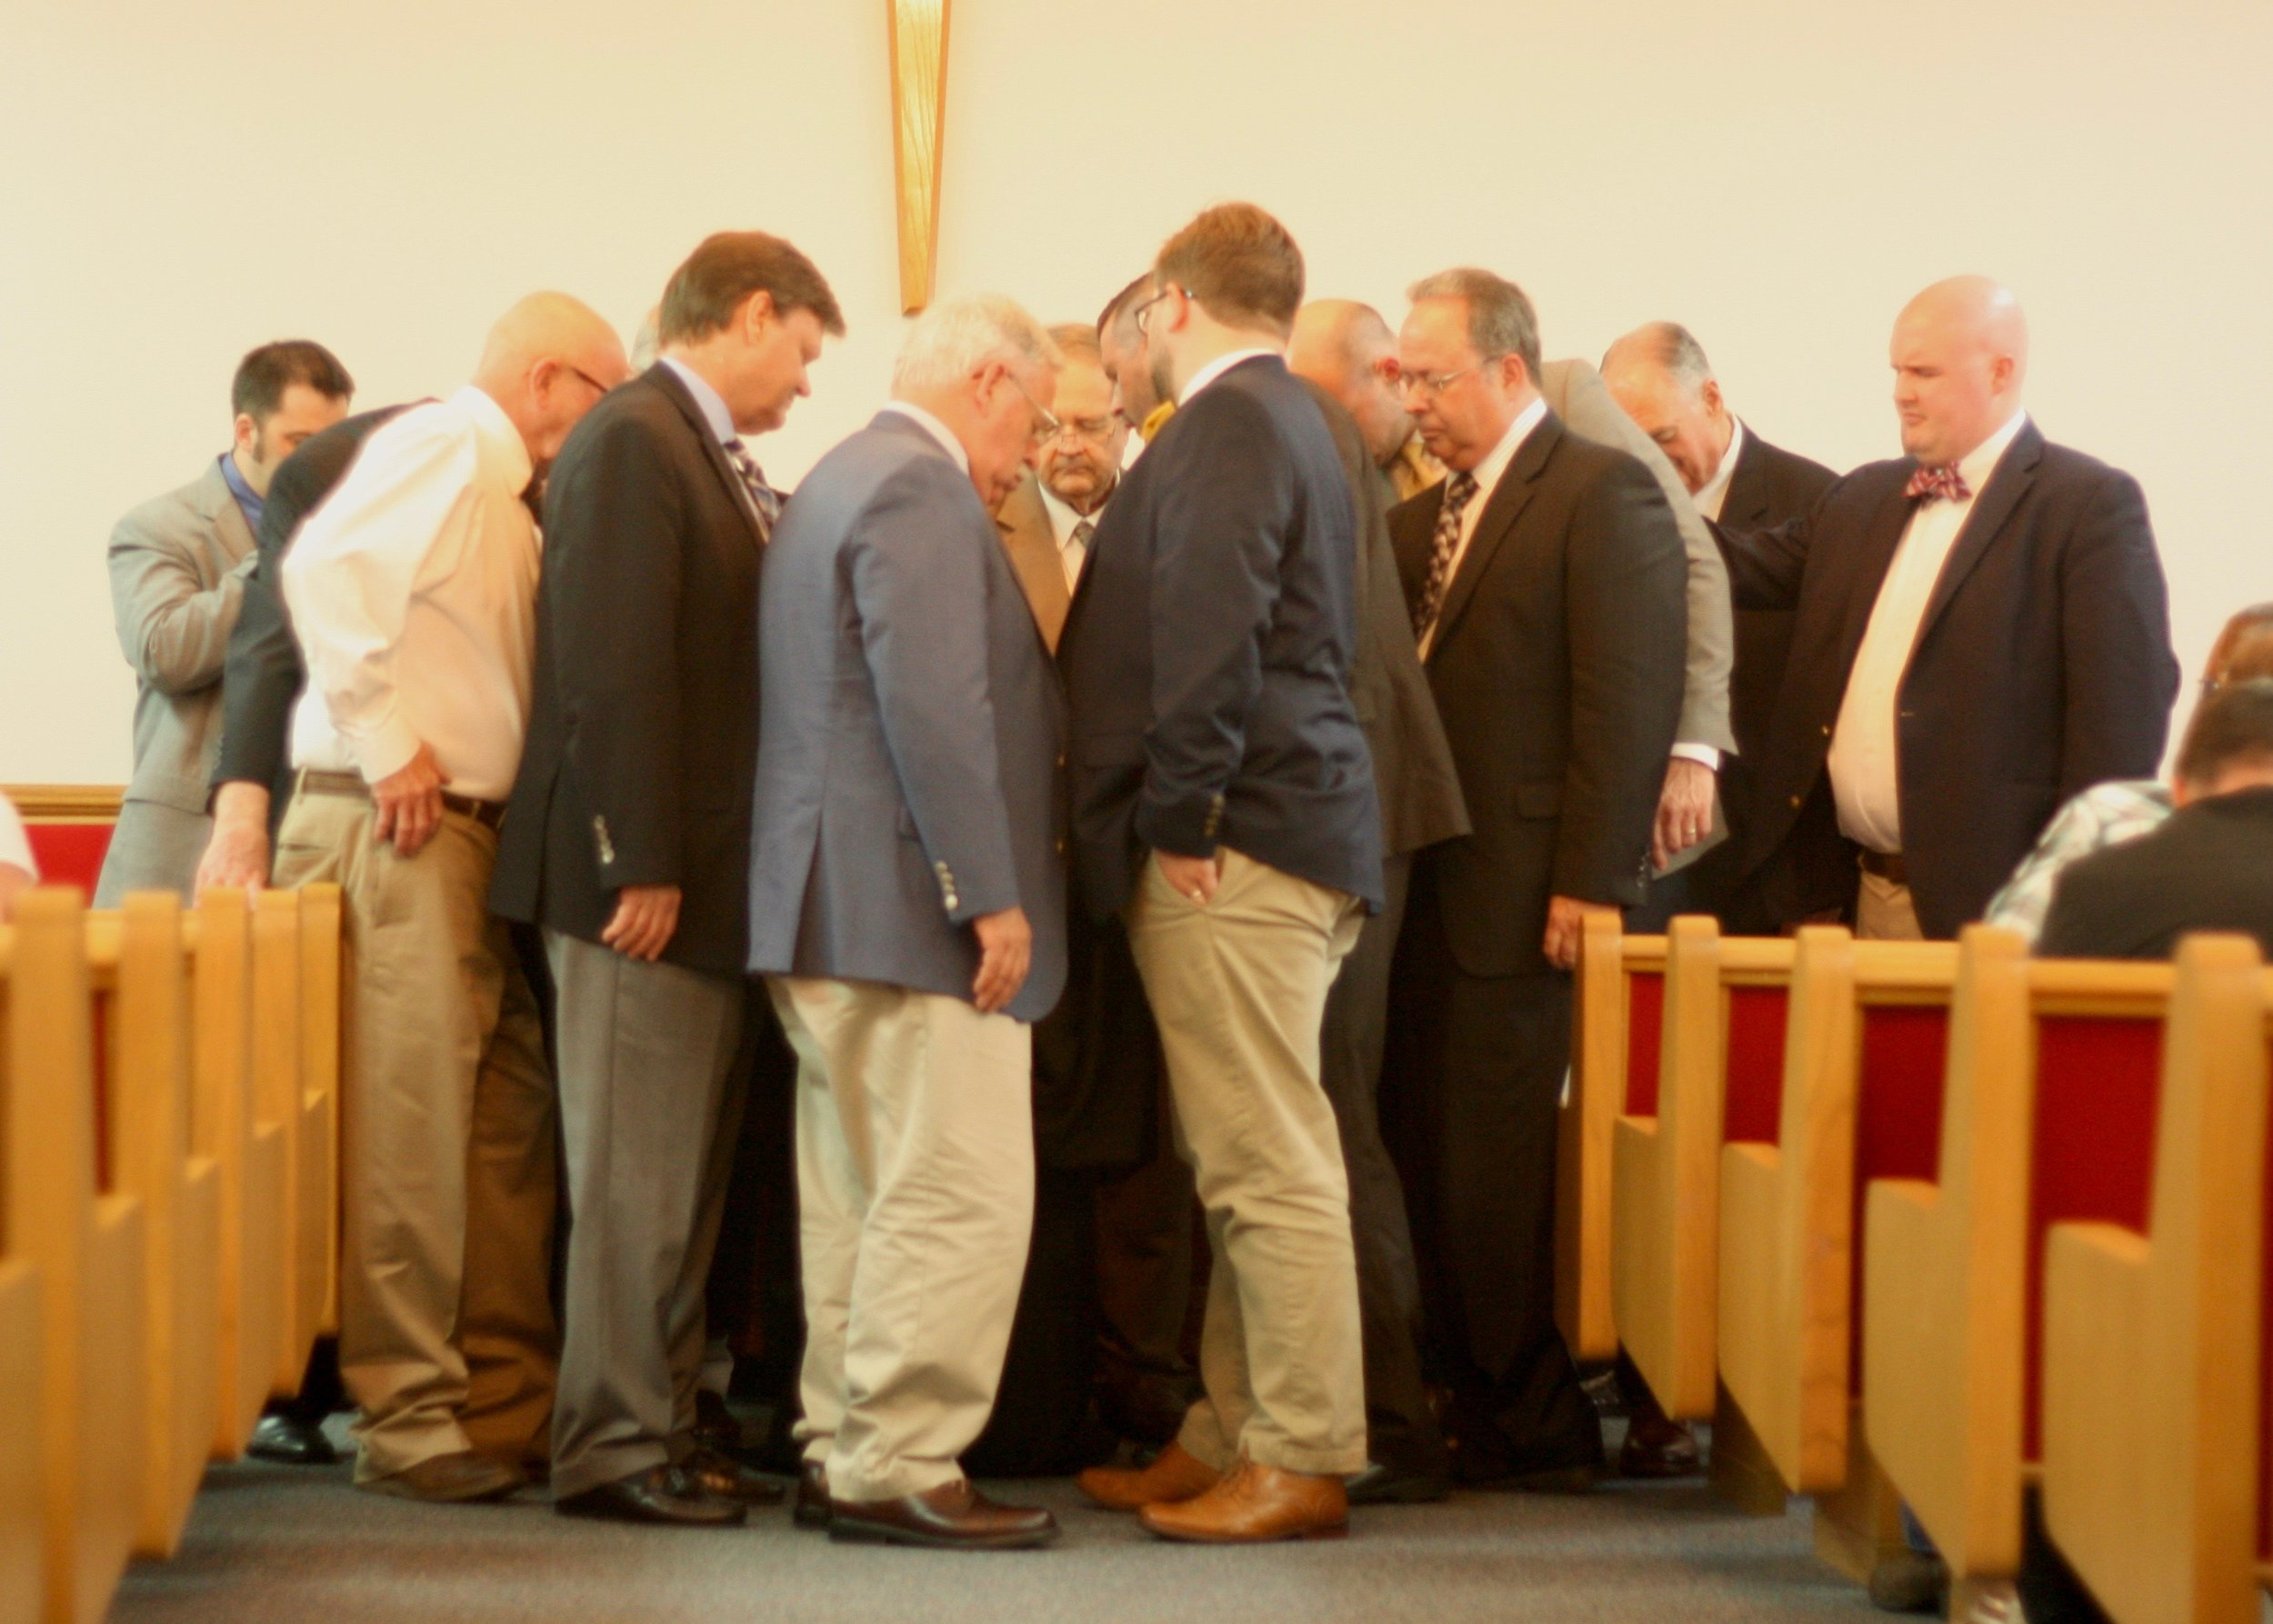 WPC's elders and local area pastors lay their blessings on WPC's newly ordained pastor